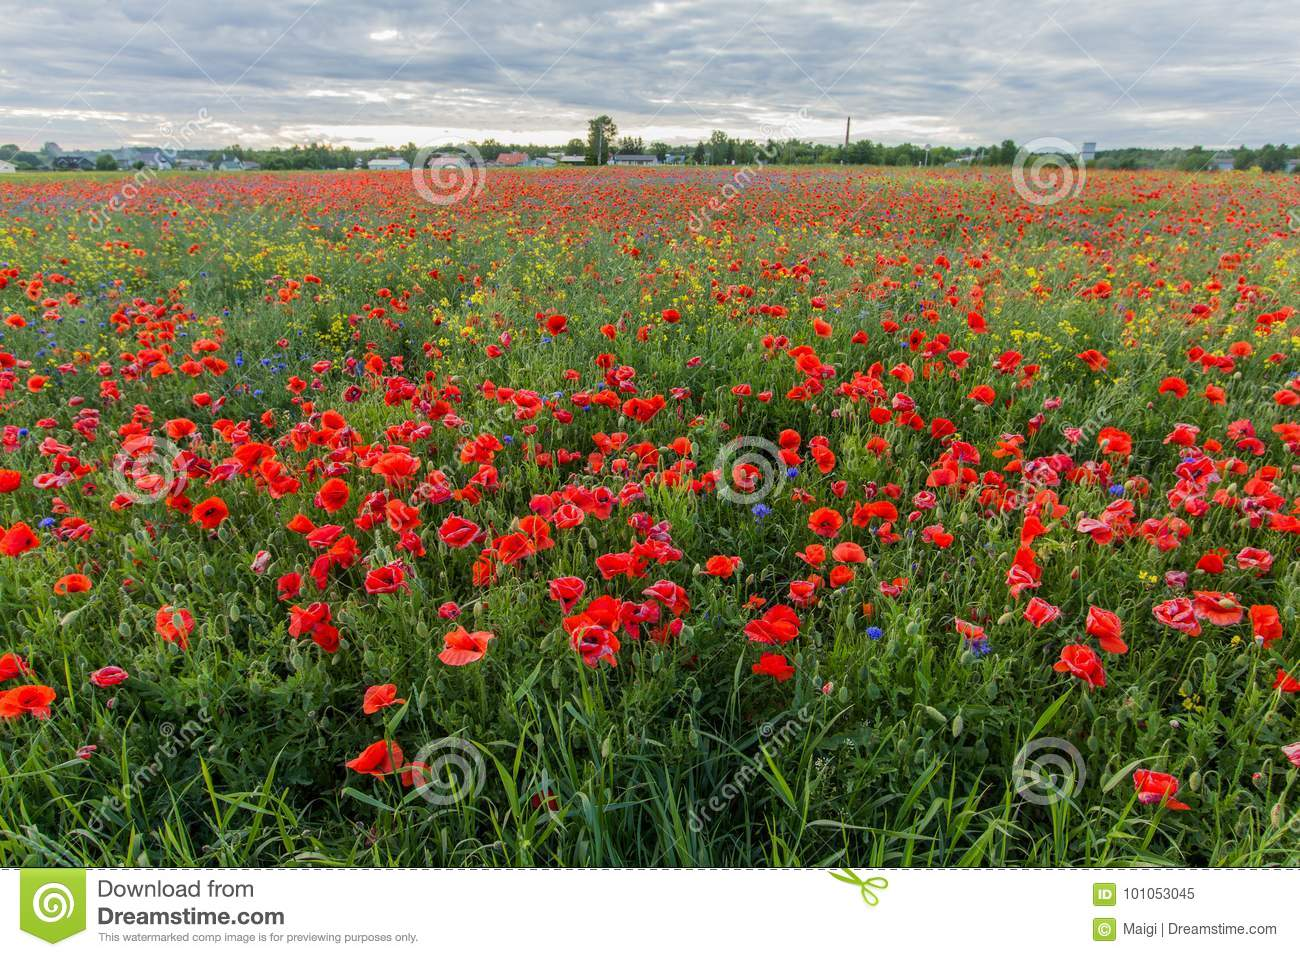 Download Poppy Field With Blooming Red Flowers Stock Image - Image of papaver, plants: 101053045